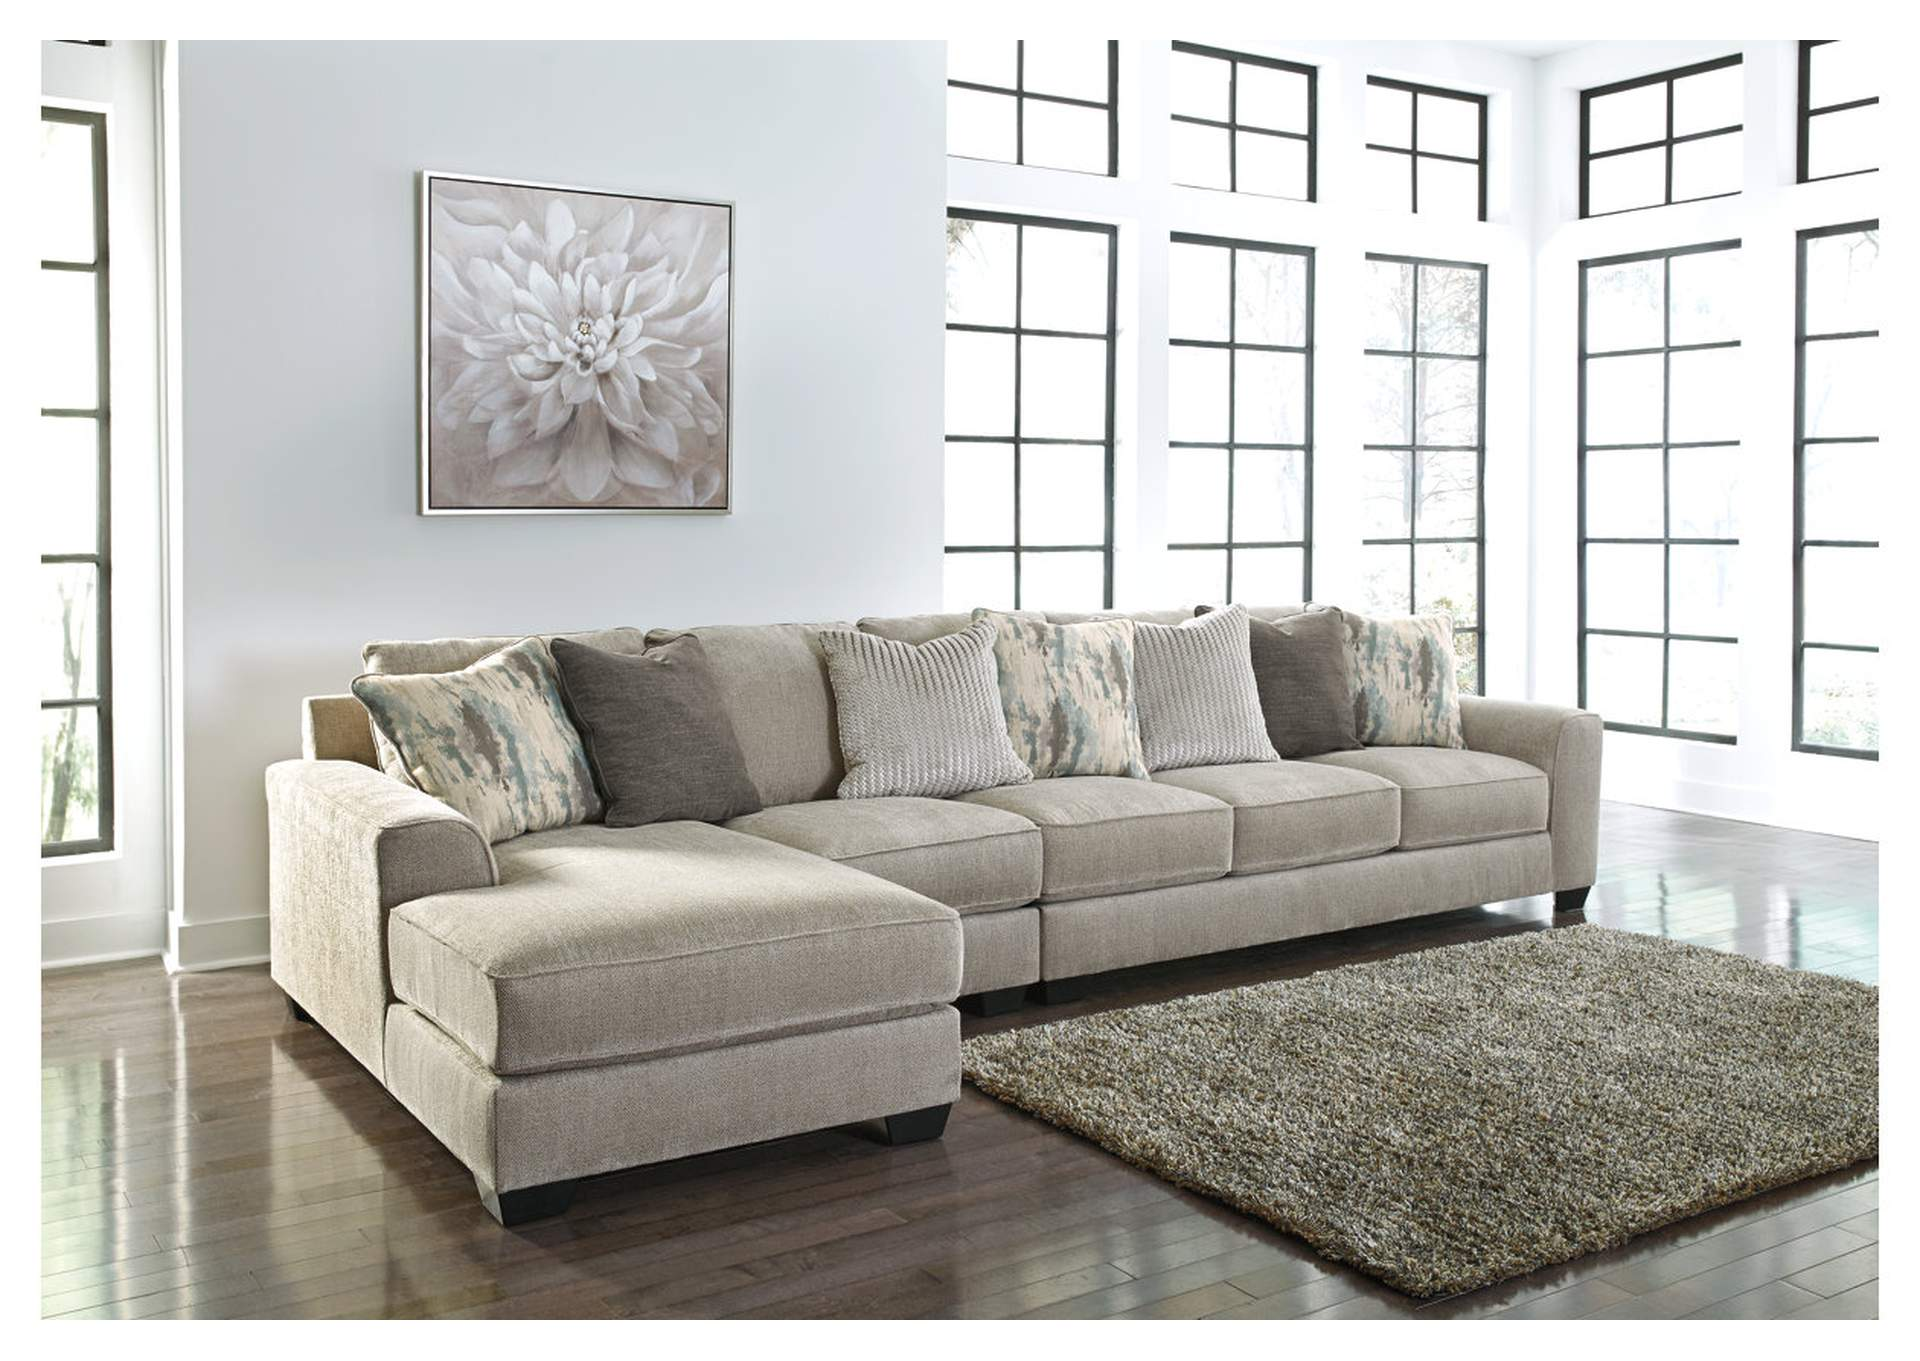 Ardsley Pewter 3 Piece LAF Chaise Sectional,Signature Design By Ashley